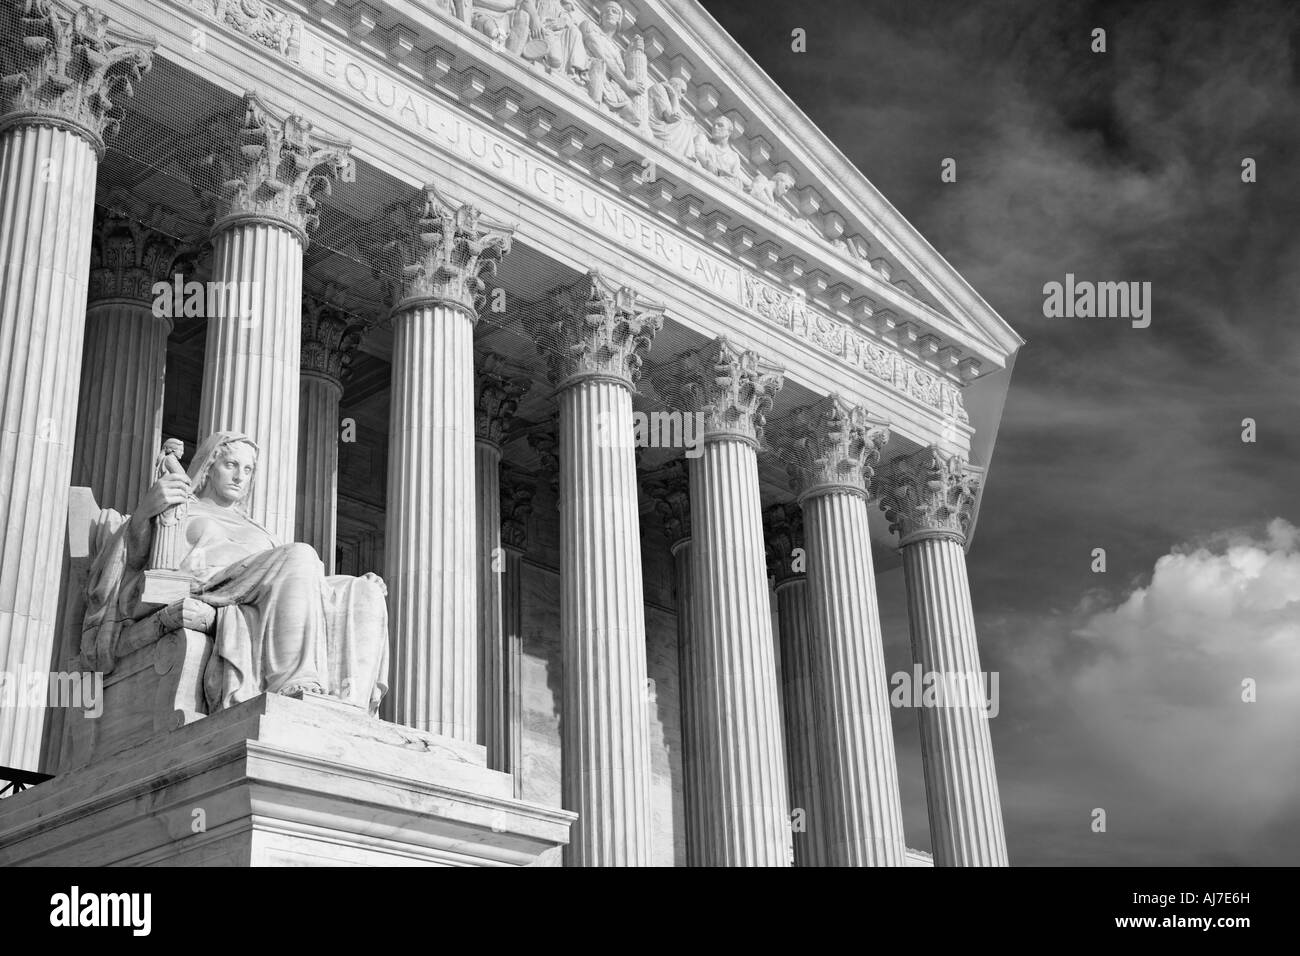 The statue of Contemplation of Justice sits beneath the Corinthian columns of the Supreme Court Building, Washington - Stock Image